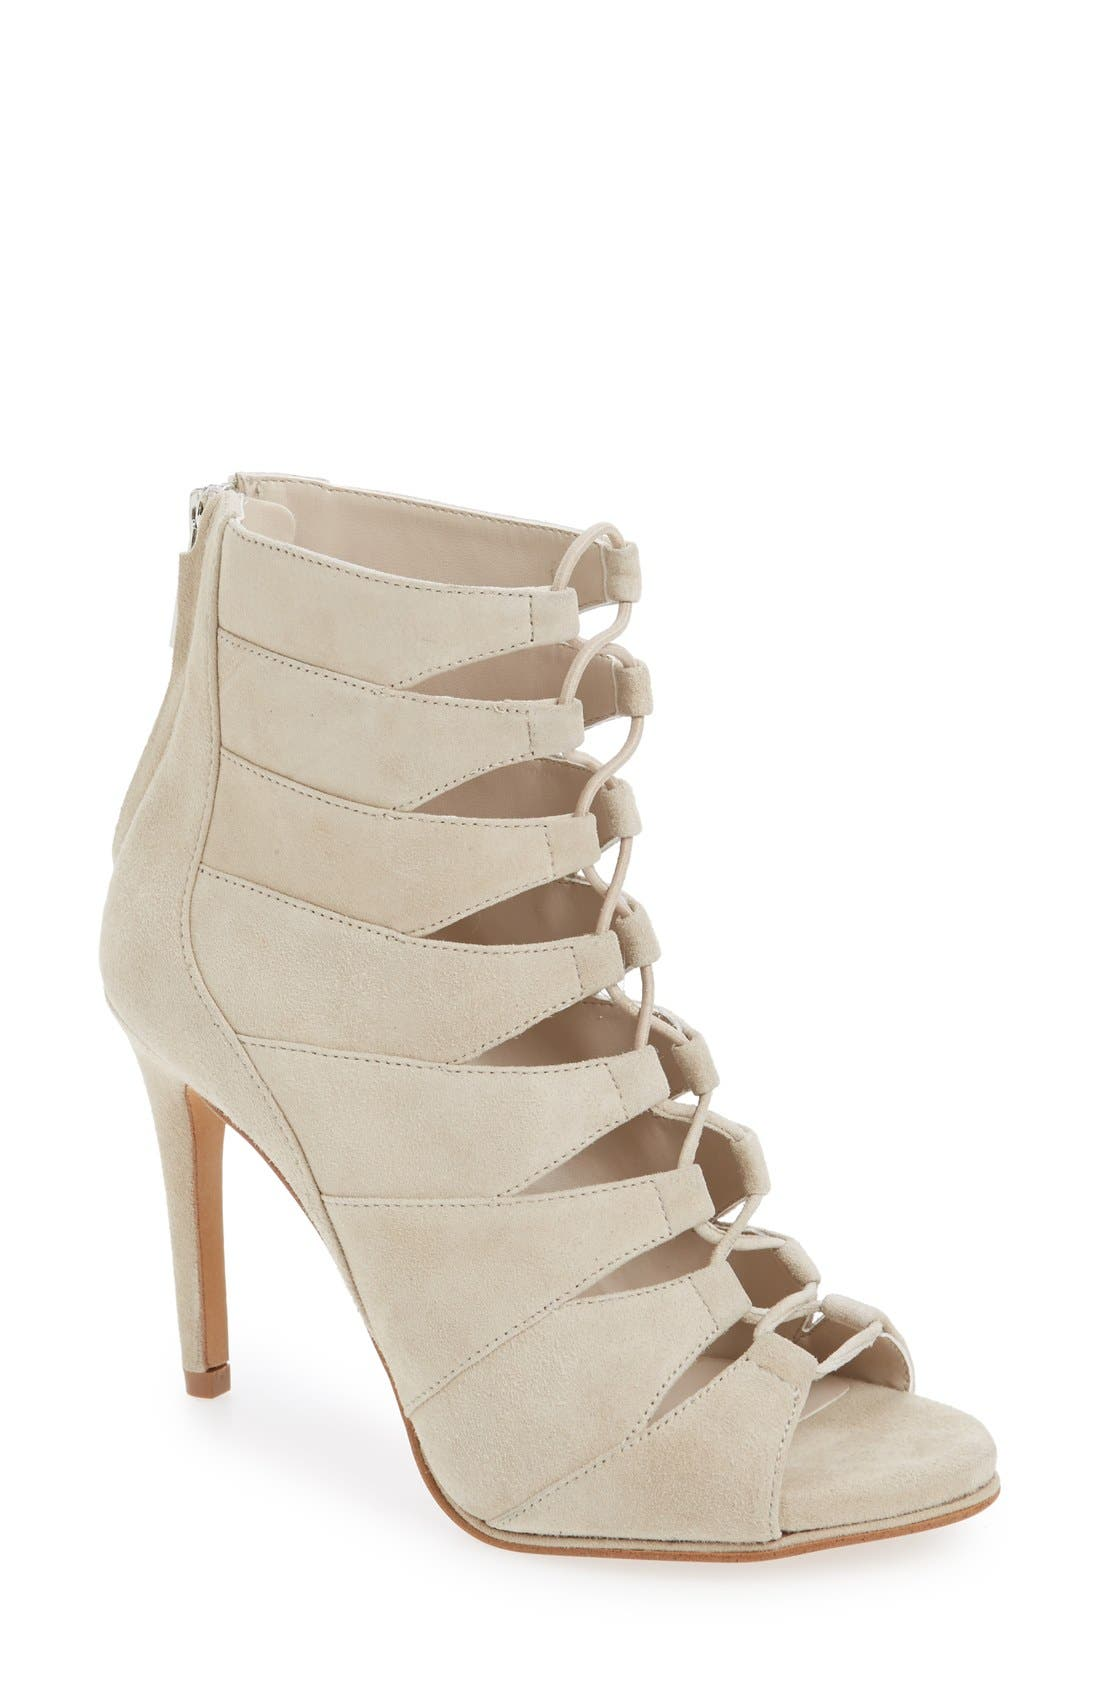 'Barlow' Sandal,                         Main,                         color, Taupe Suede